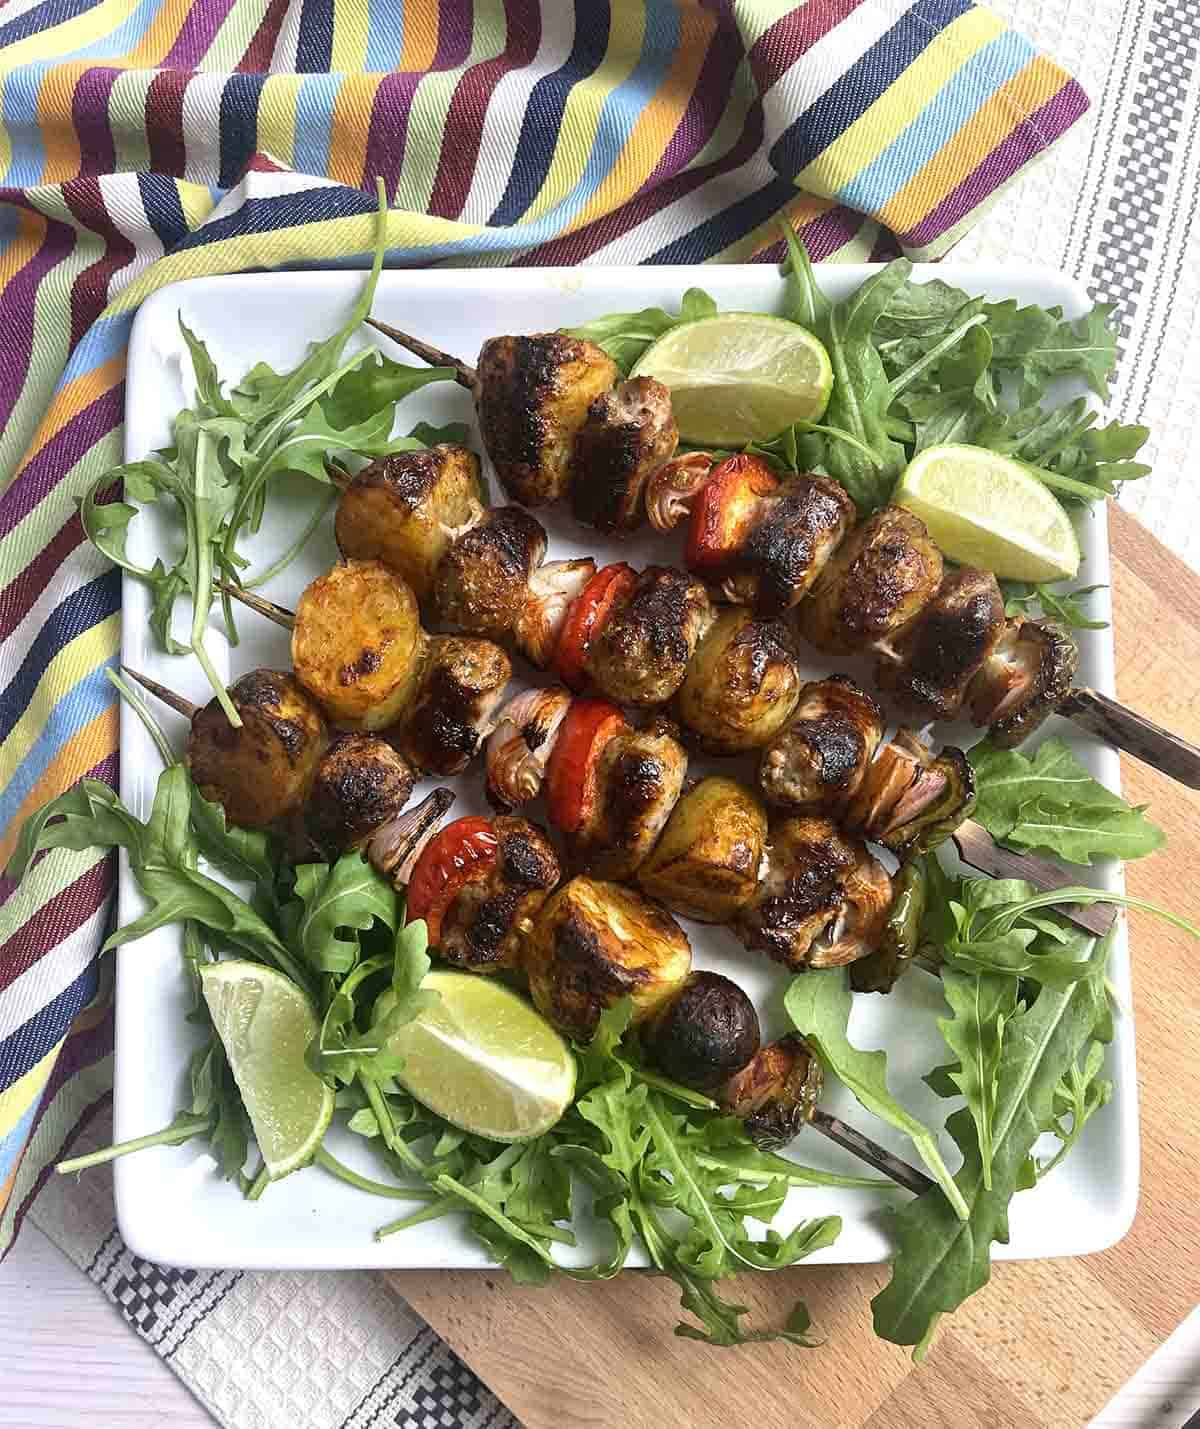 Lincolnshire sausage skewers on a plate.